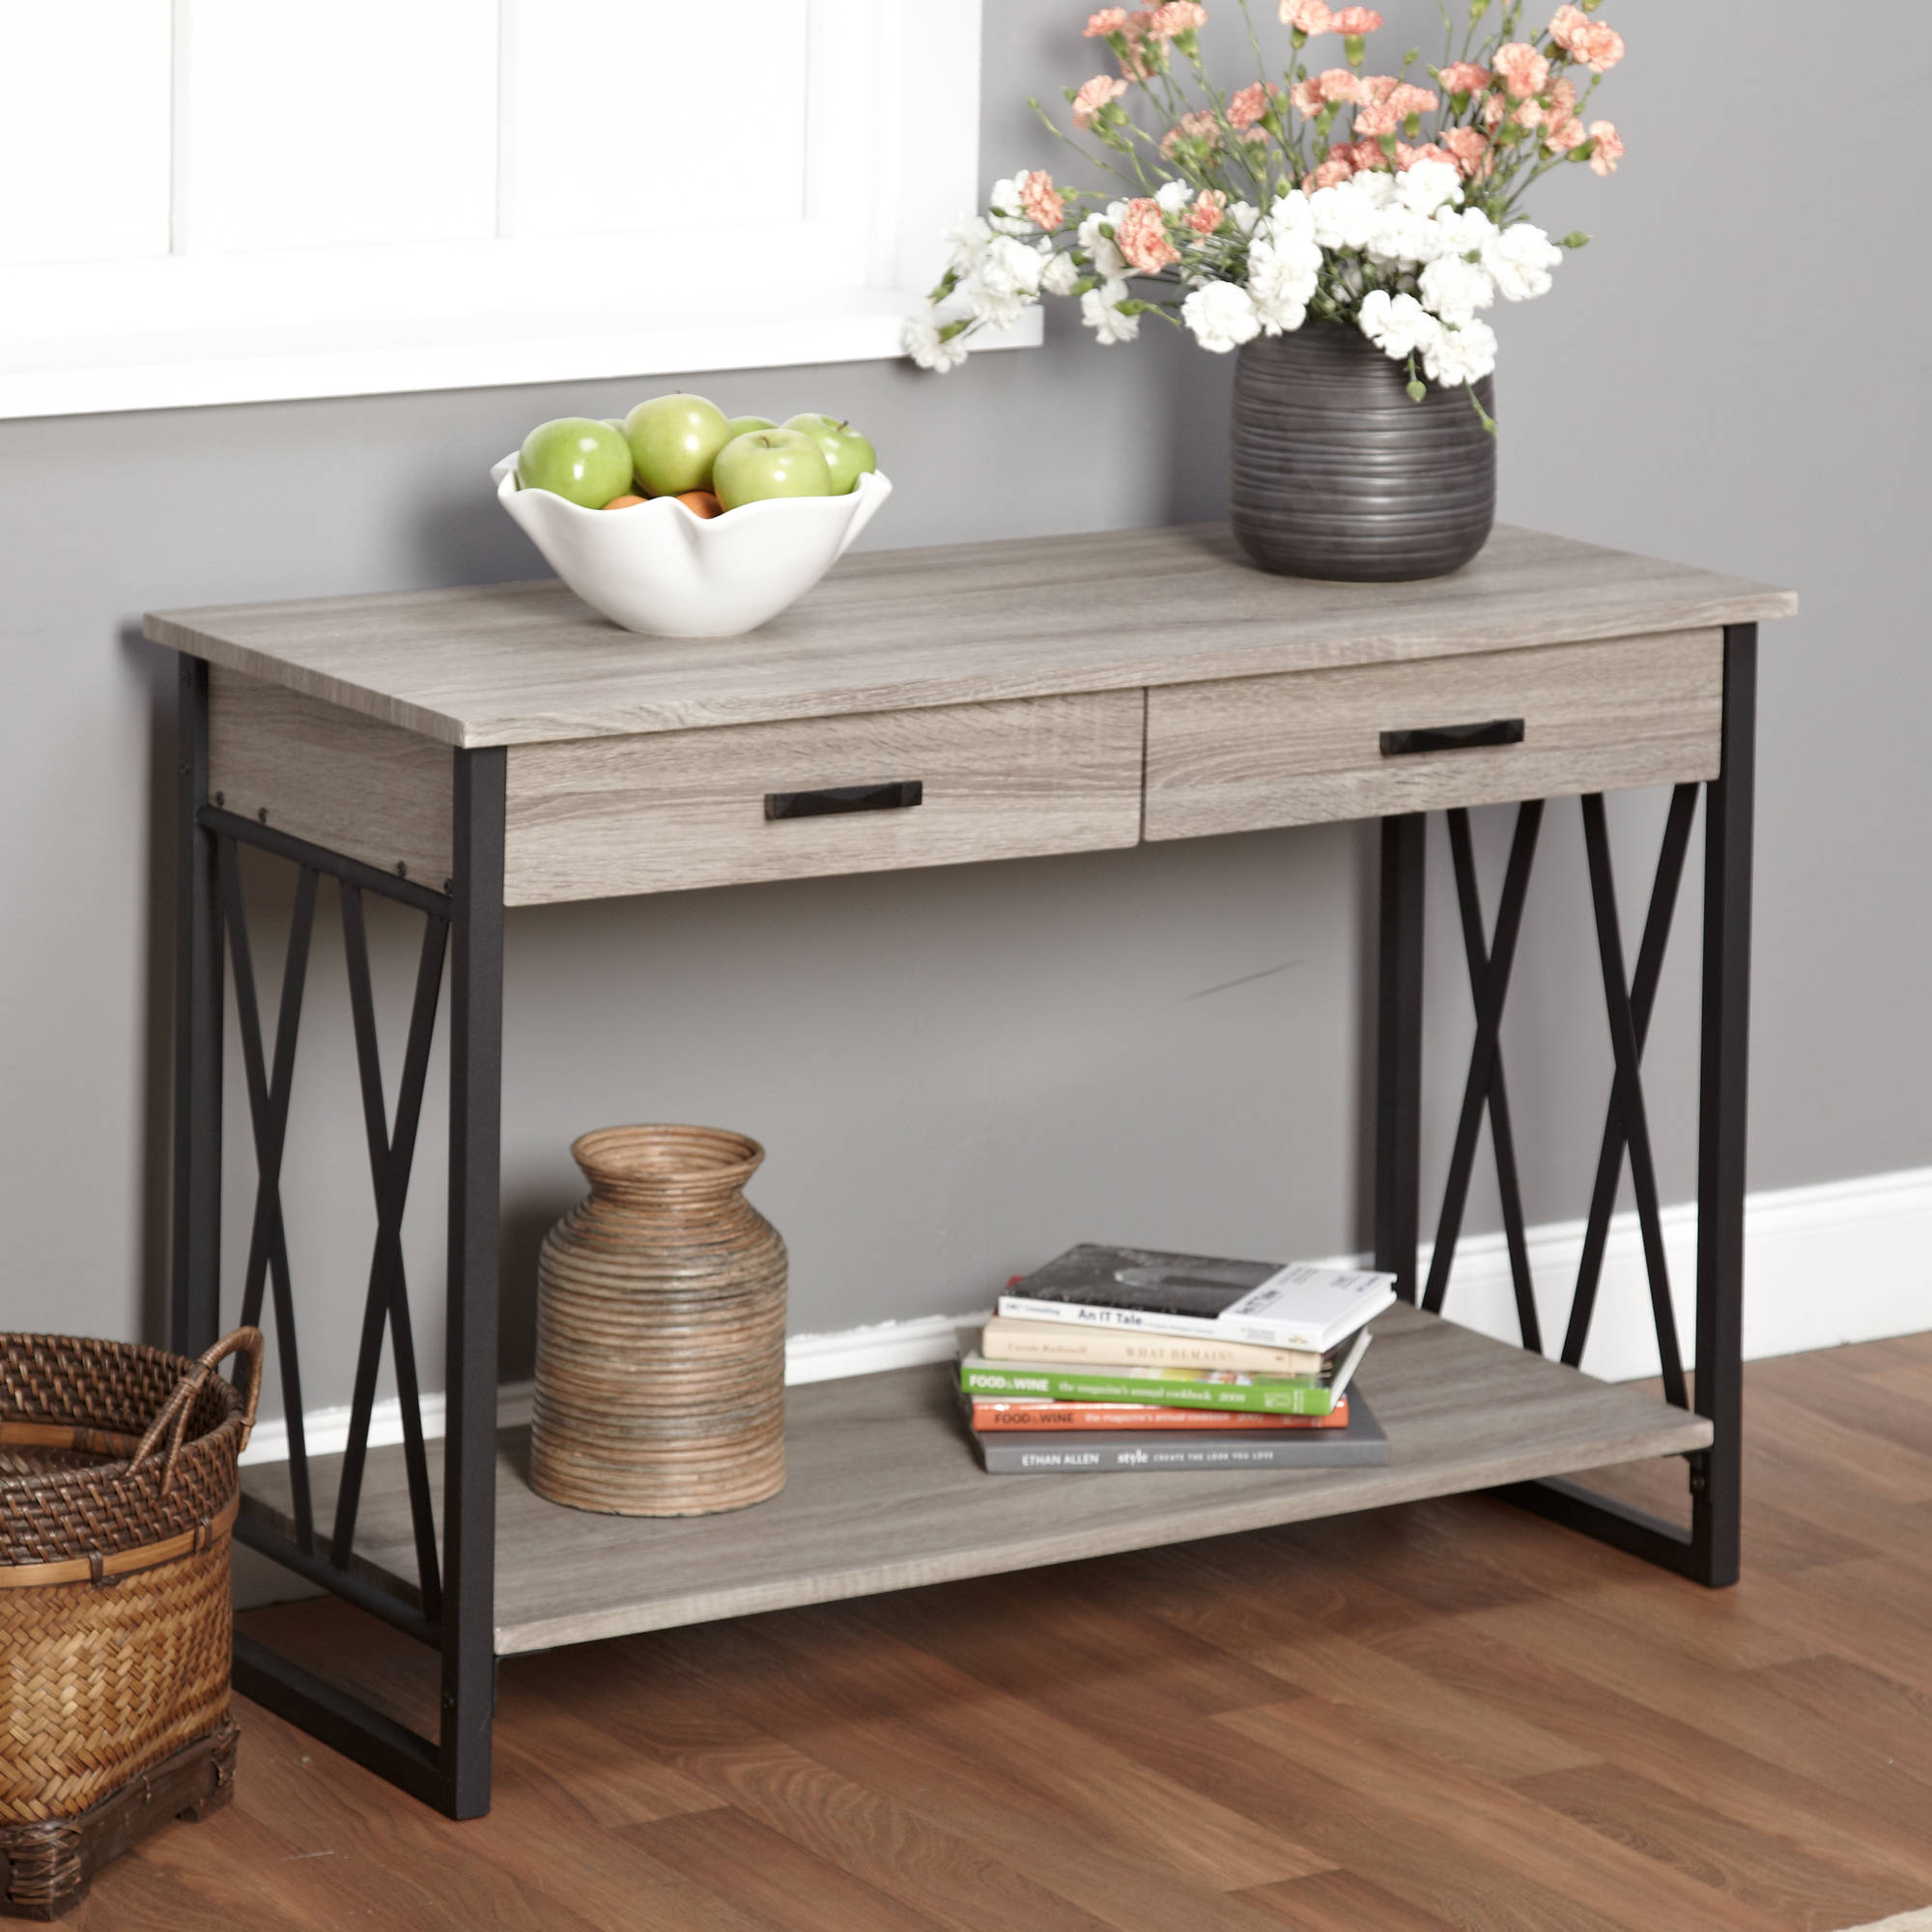 Leny XX Collection Sofa Table, Multiple Colors